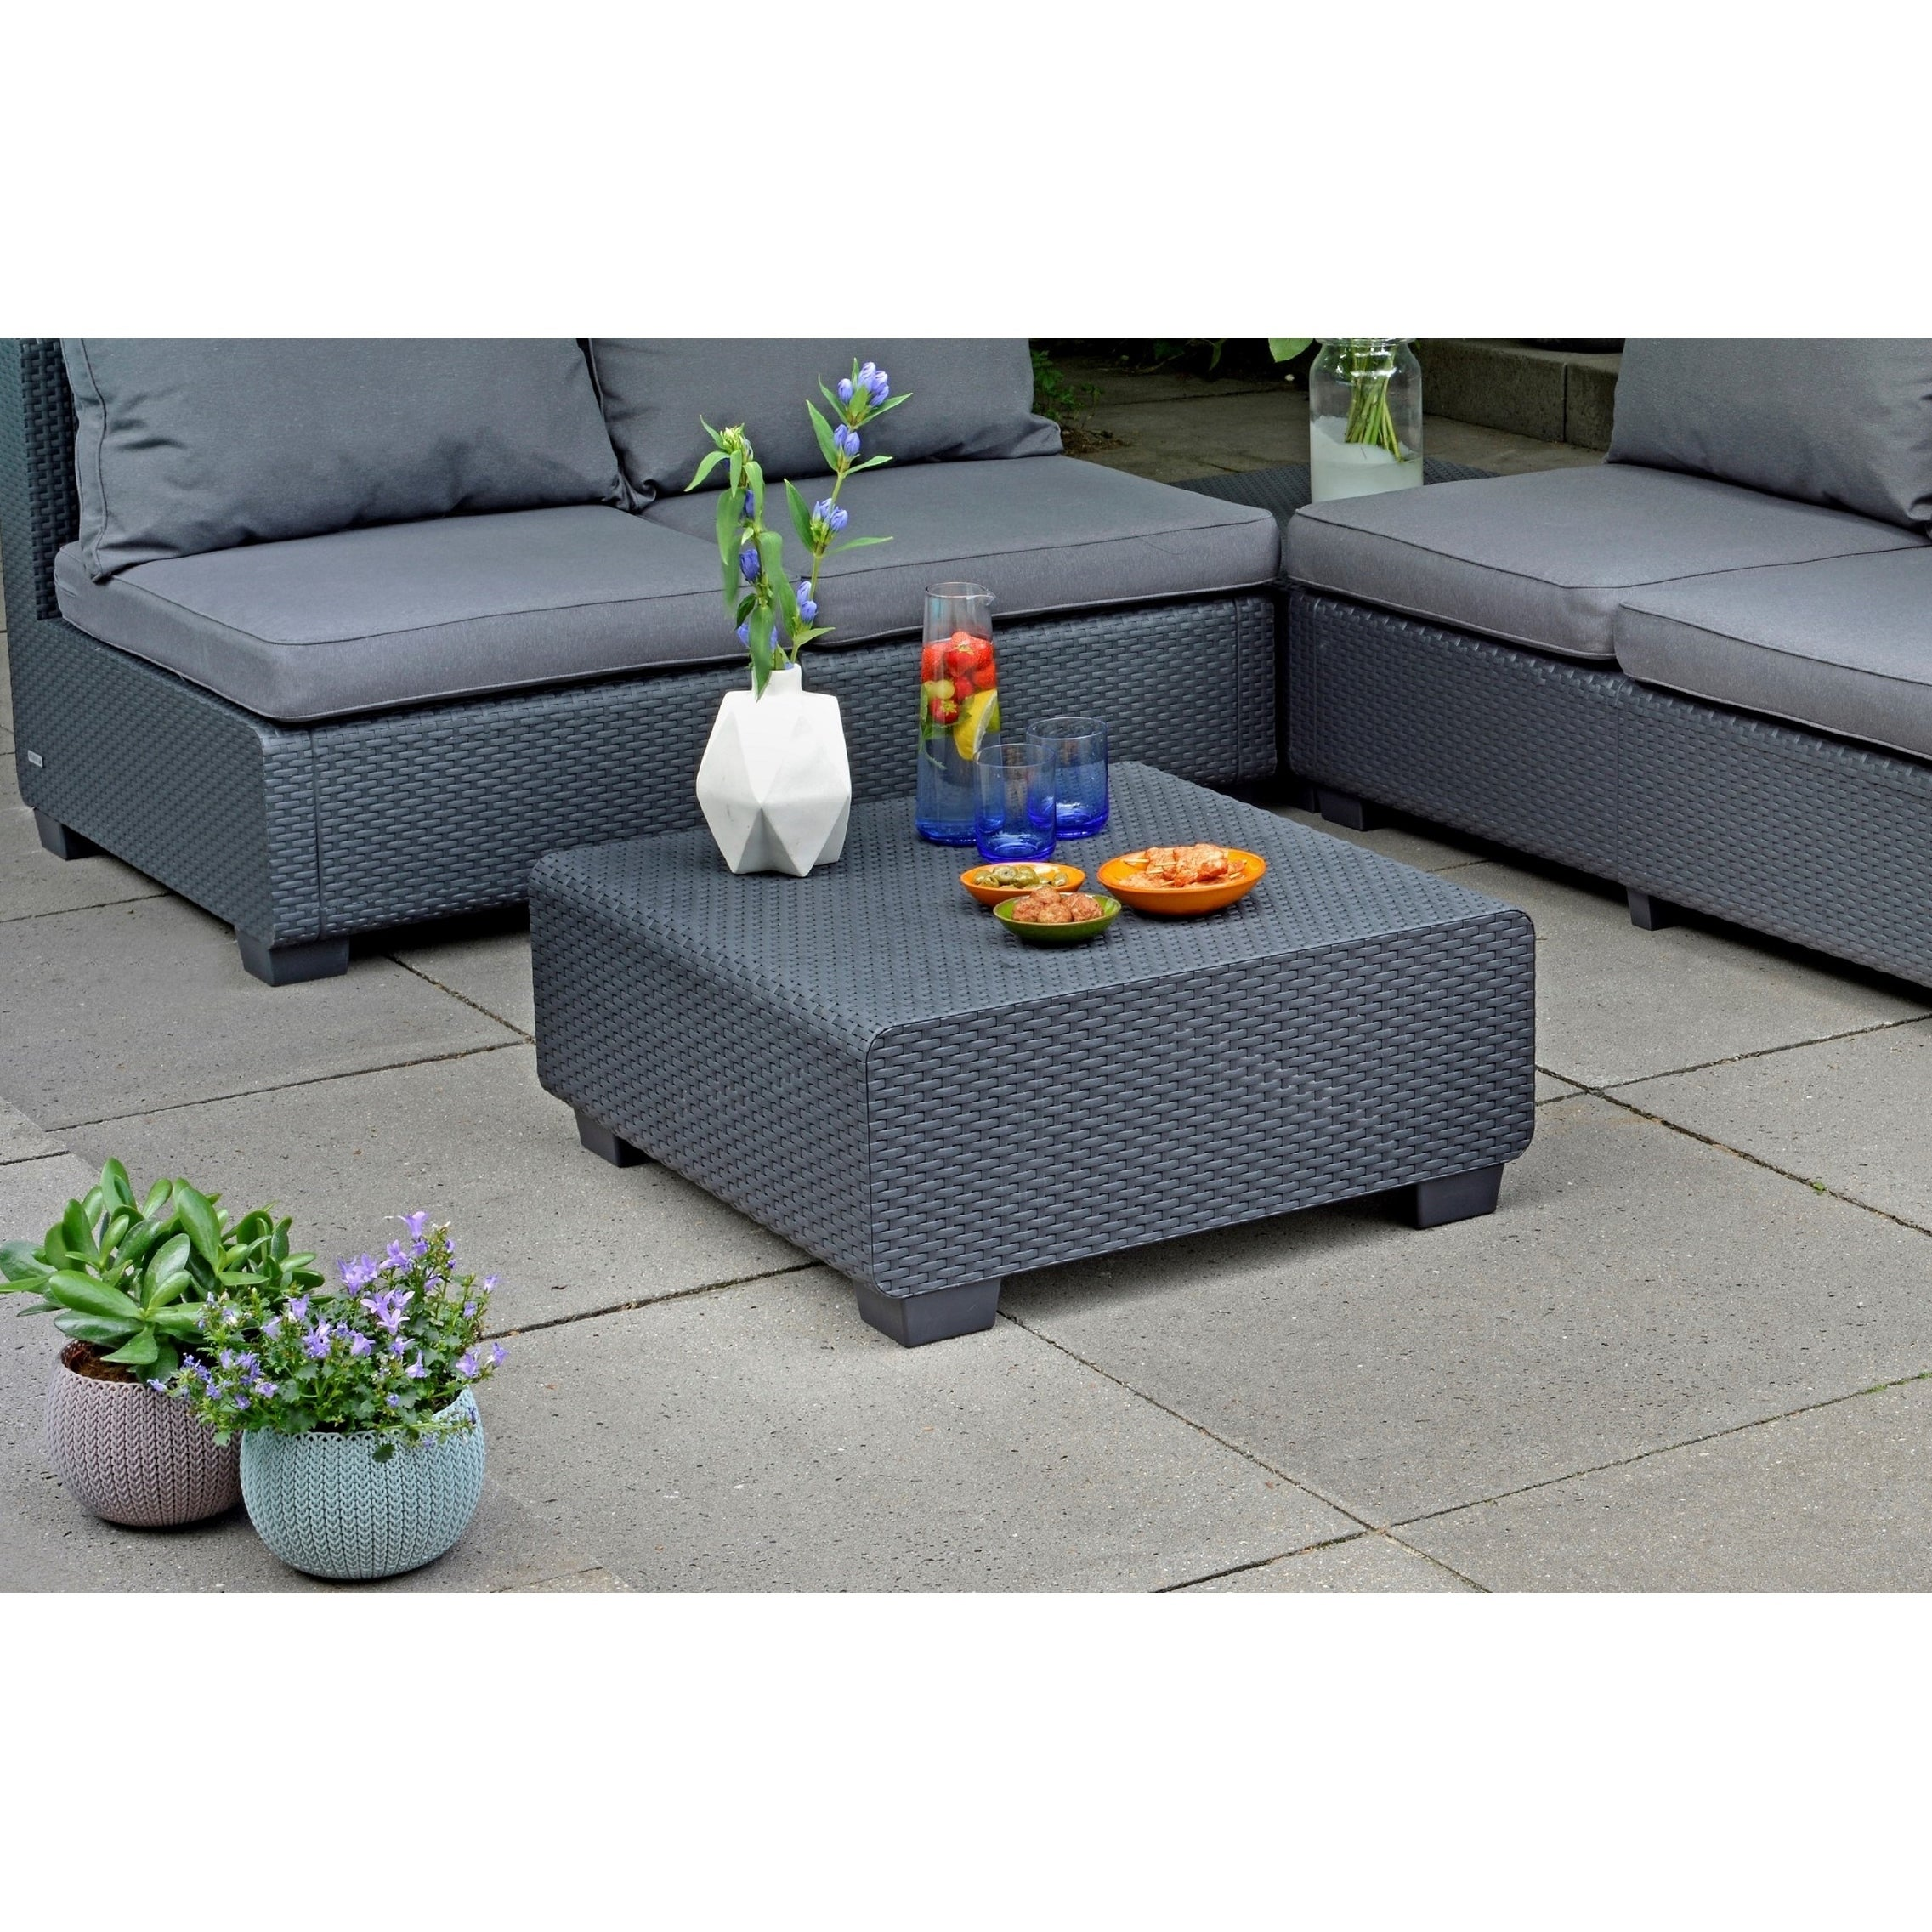 pcs cushions gradient set cloud brown loveseat furniture outdoor products with df inc patio mountain